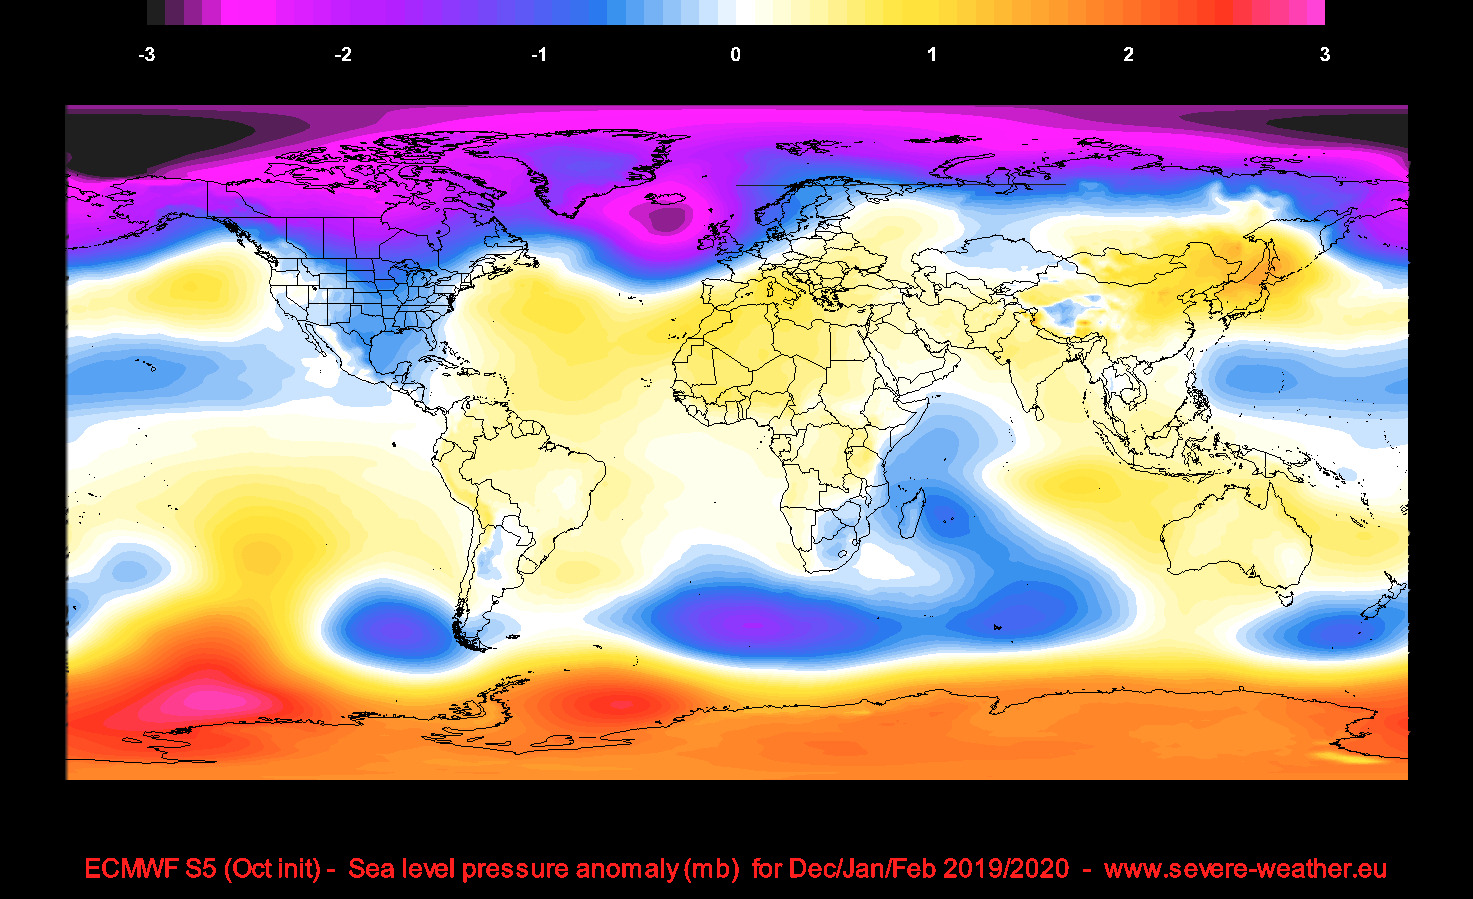 Winter 2019/2020* Update - Latest Model Forecasts For The